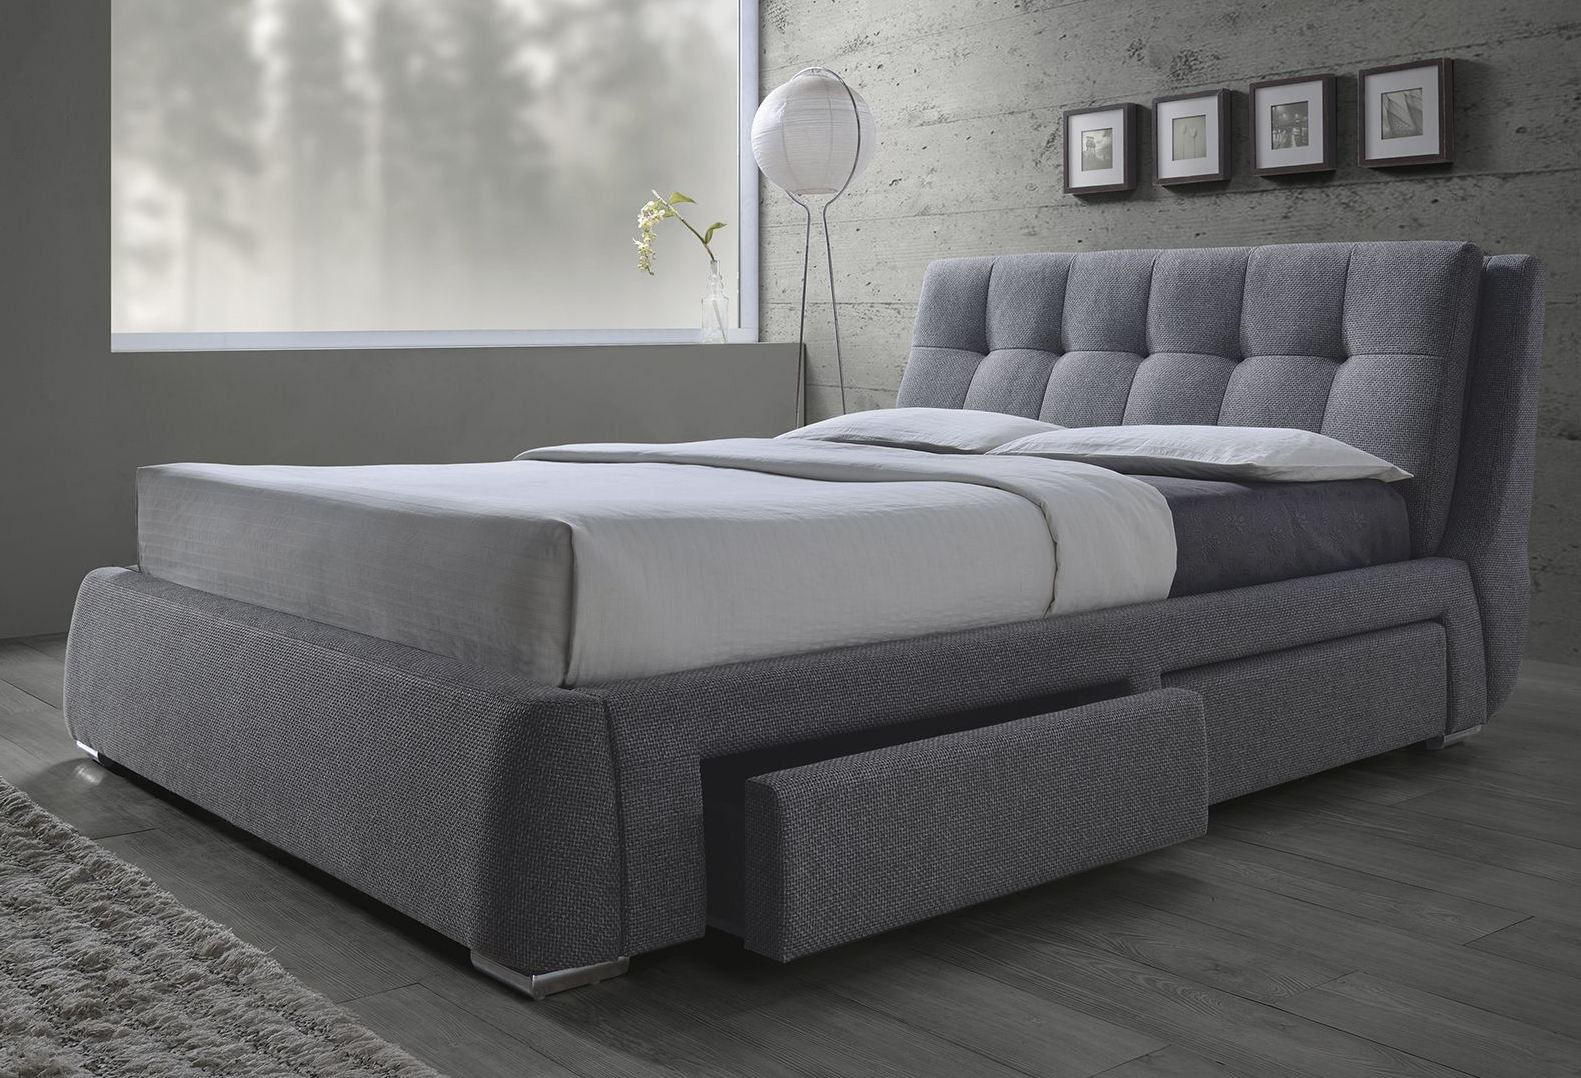 Fenbbrook gray cal king platform storage bed 300523kw Platform king bed